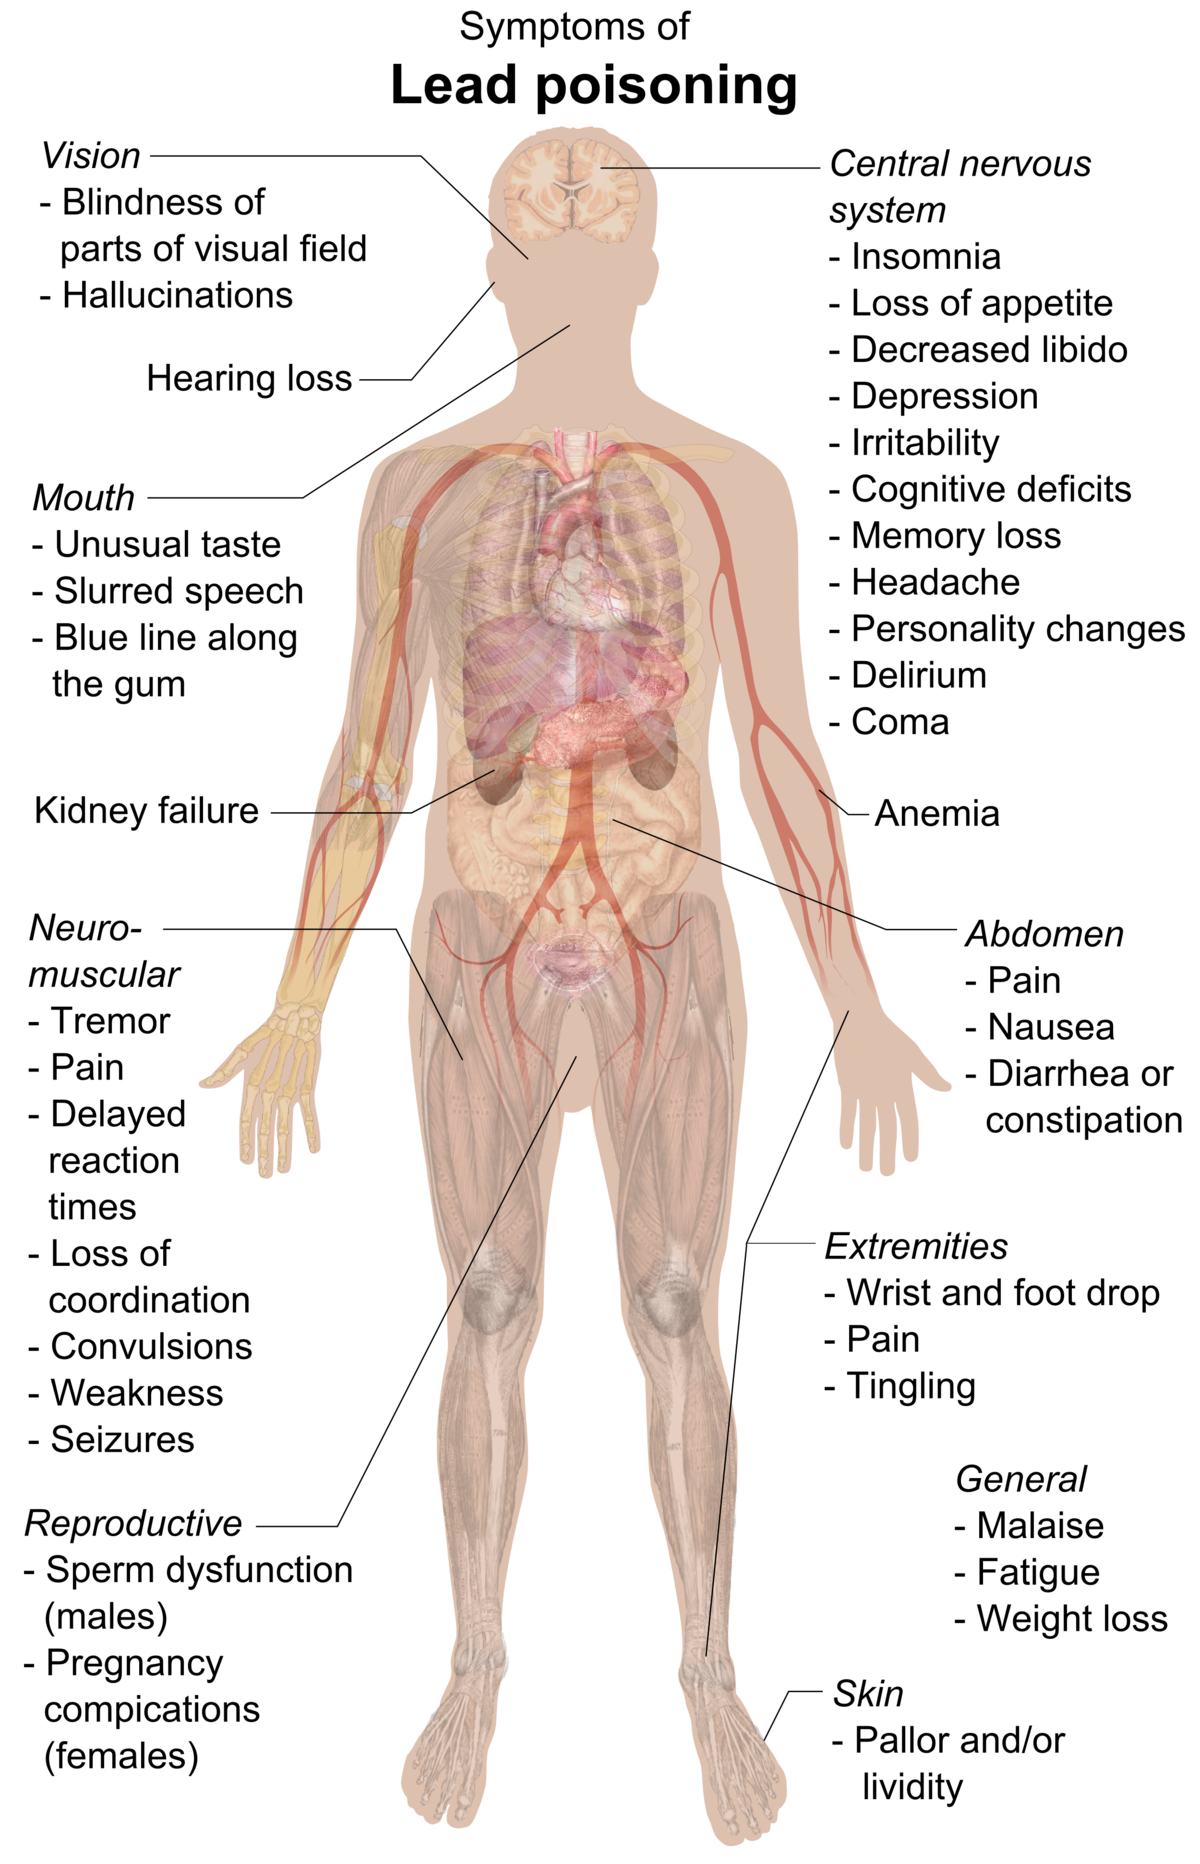 Symptoms Of Lead Poisoning Raster Lead Poisoning Wikipedia Lead Poisoning Memory Loss Medical Facts